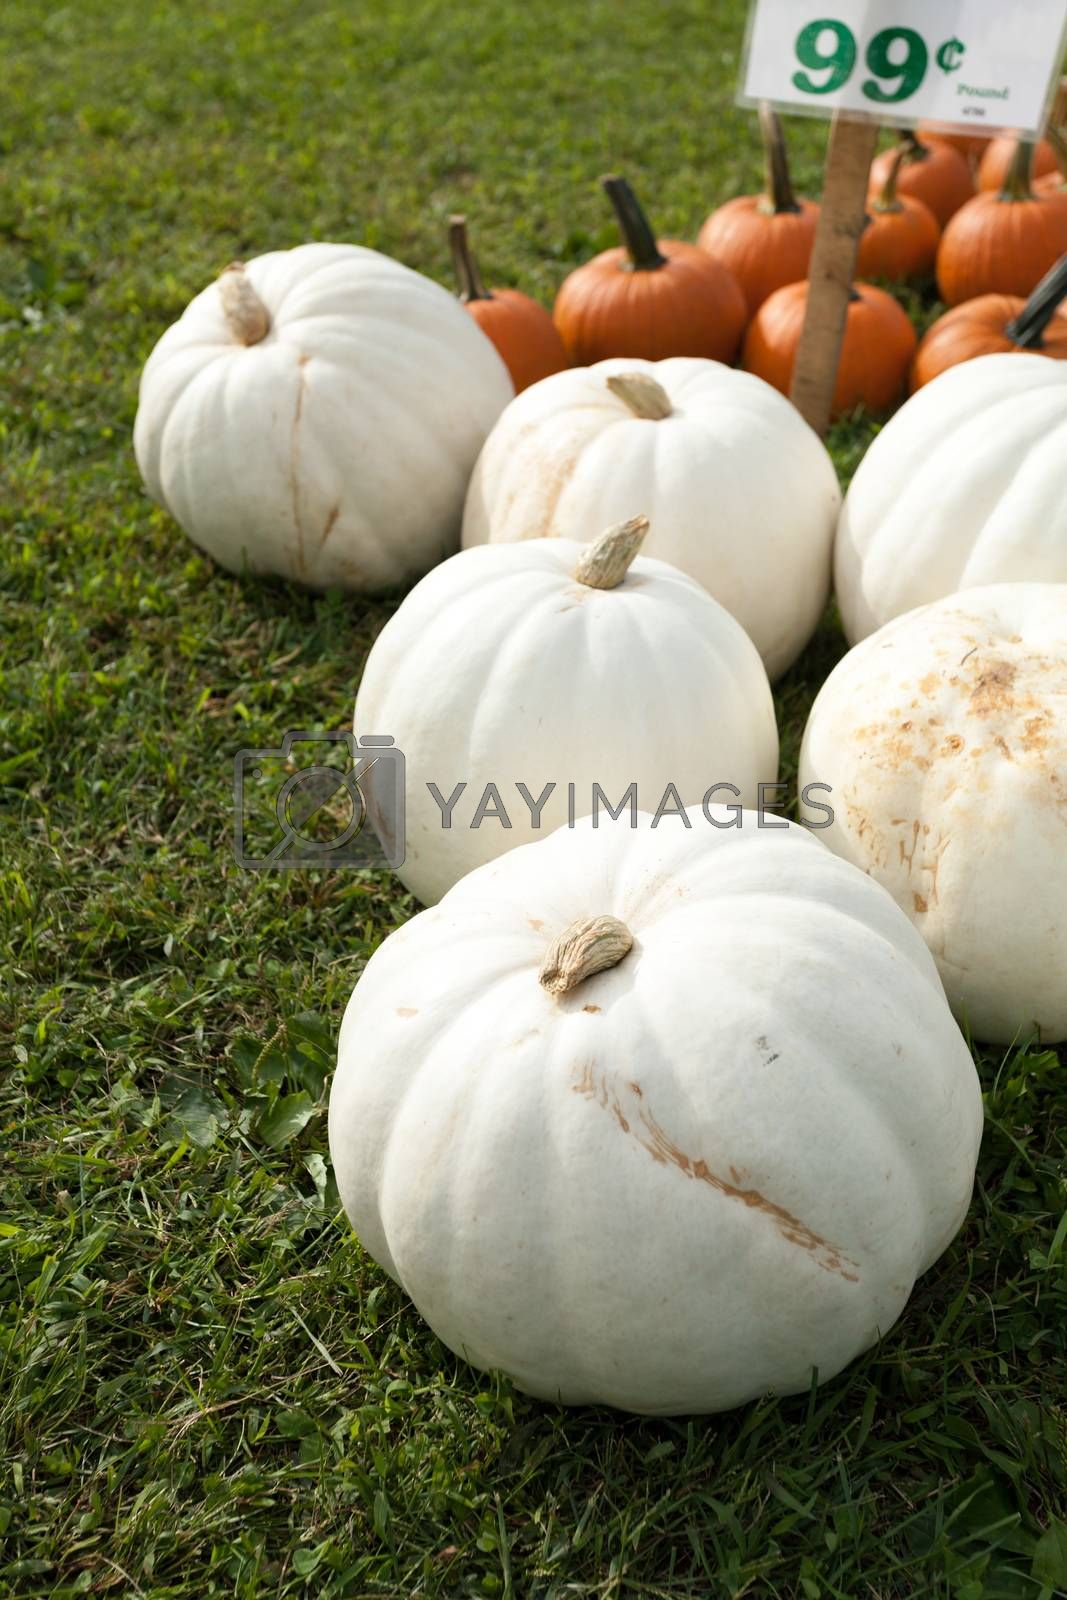 White pumpkins picked and sitting in the grass next to some traditional orange ones. Shallow depth of field.